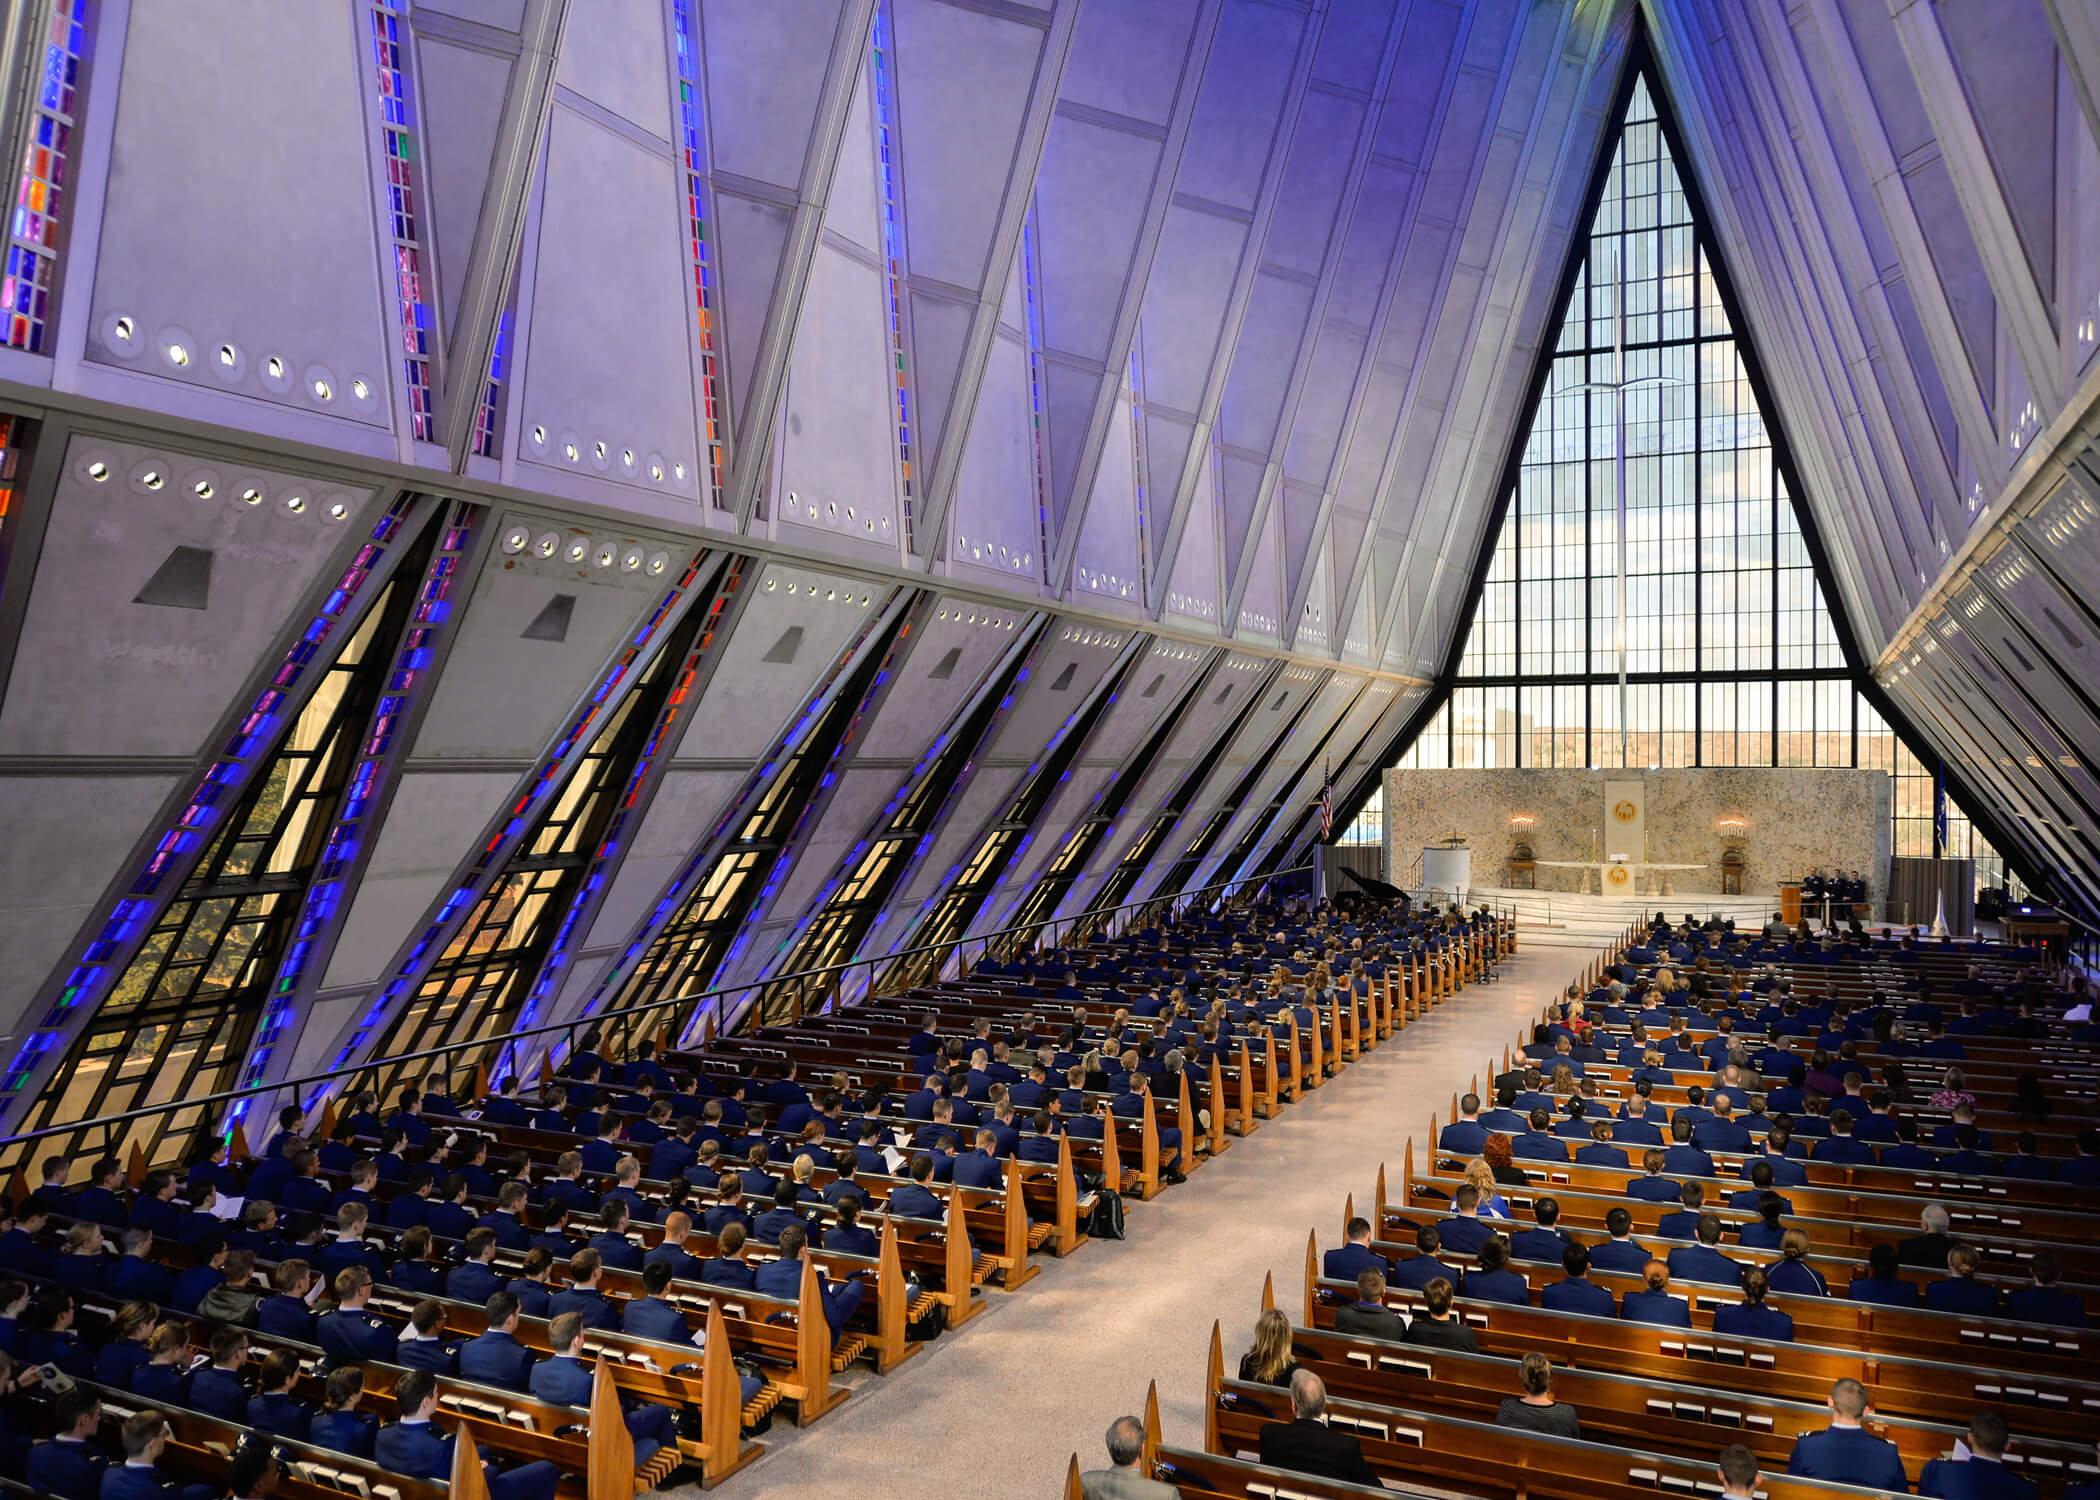 Image of a cadet chapel service at the U.S. Air Force Academy.